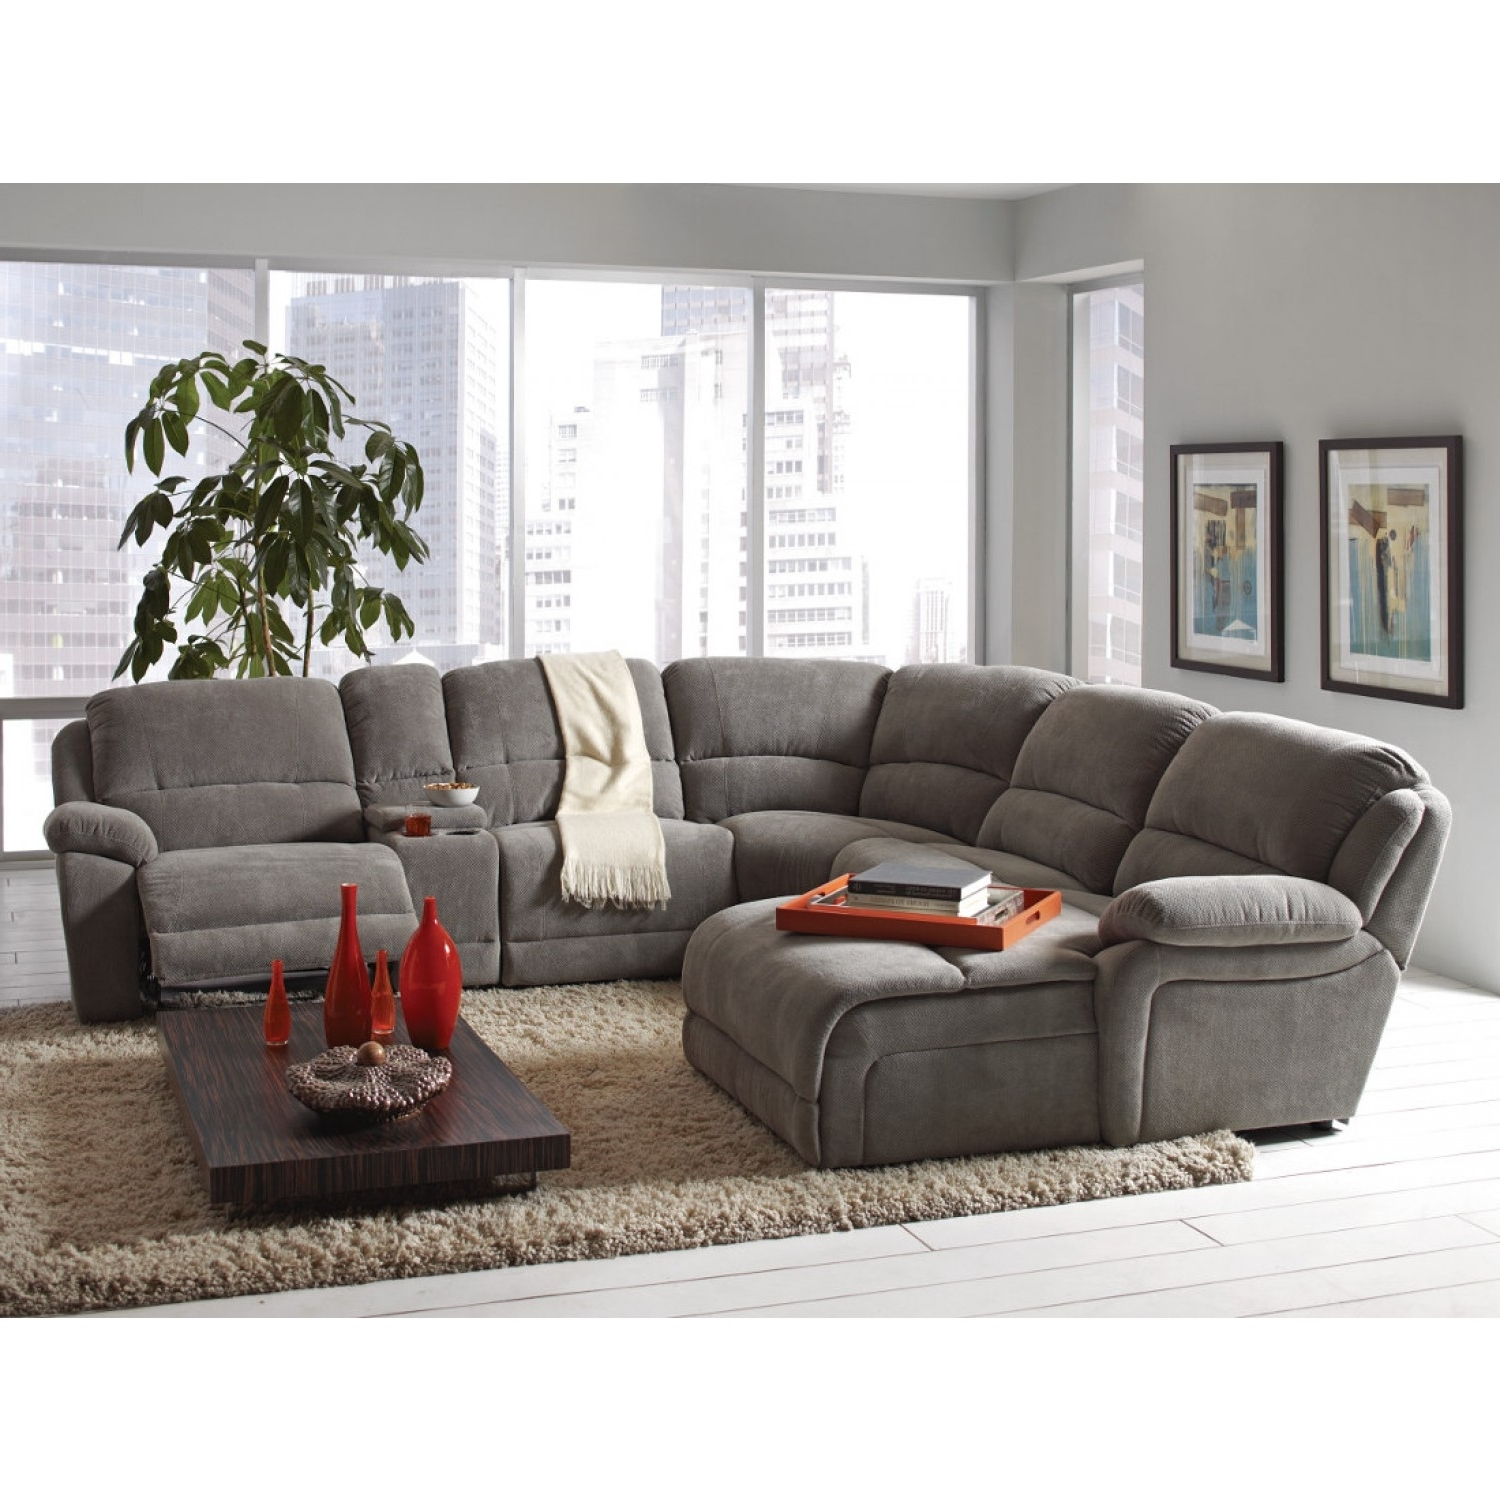 Most Recently Released Kansas City Sectional Sofas Throughout Coaster Mackenzie Silver 6 Piece Reclining Sectional Sofa With (View 13 of 20)